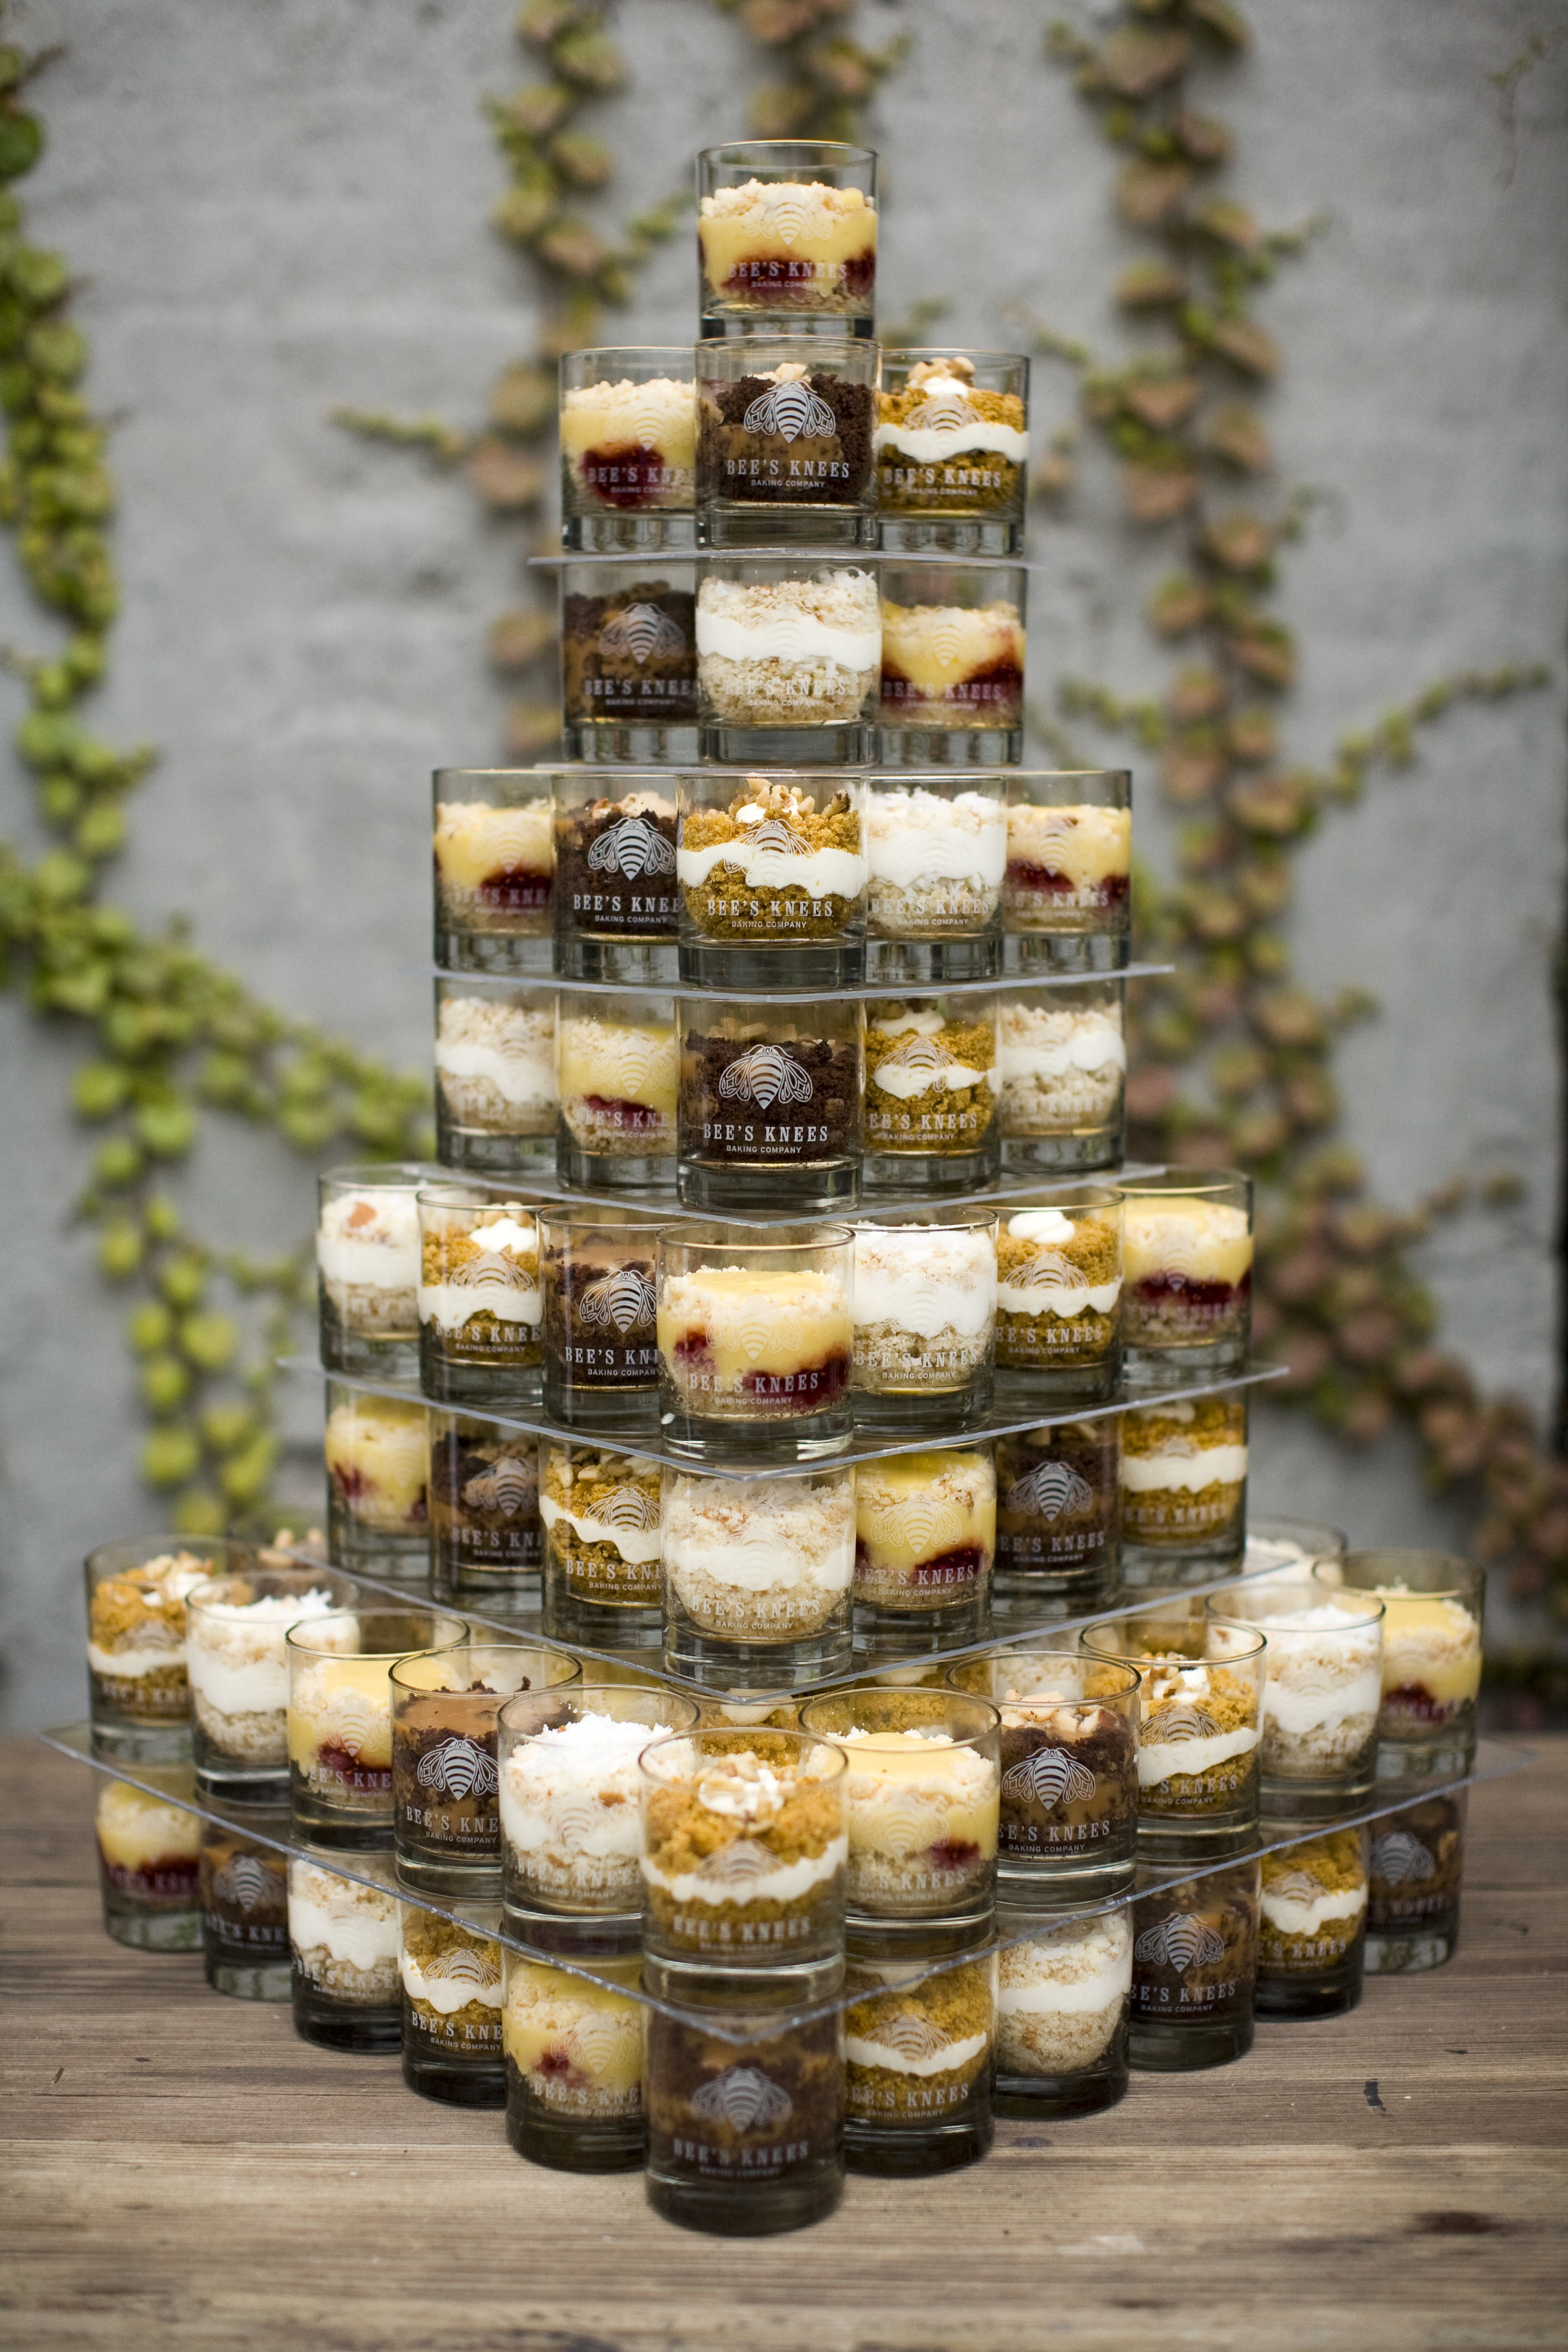 Friday feature bee s knees baking co beauandarrowevents for Mini dessert recipes in shot glasses uk